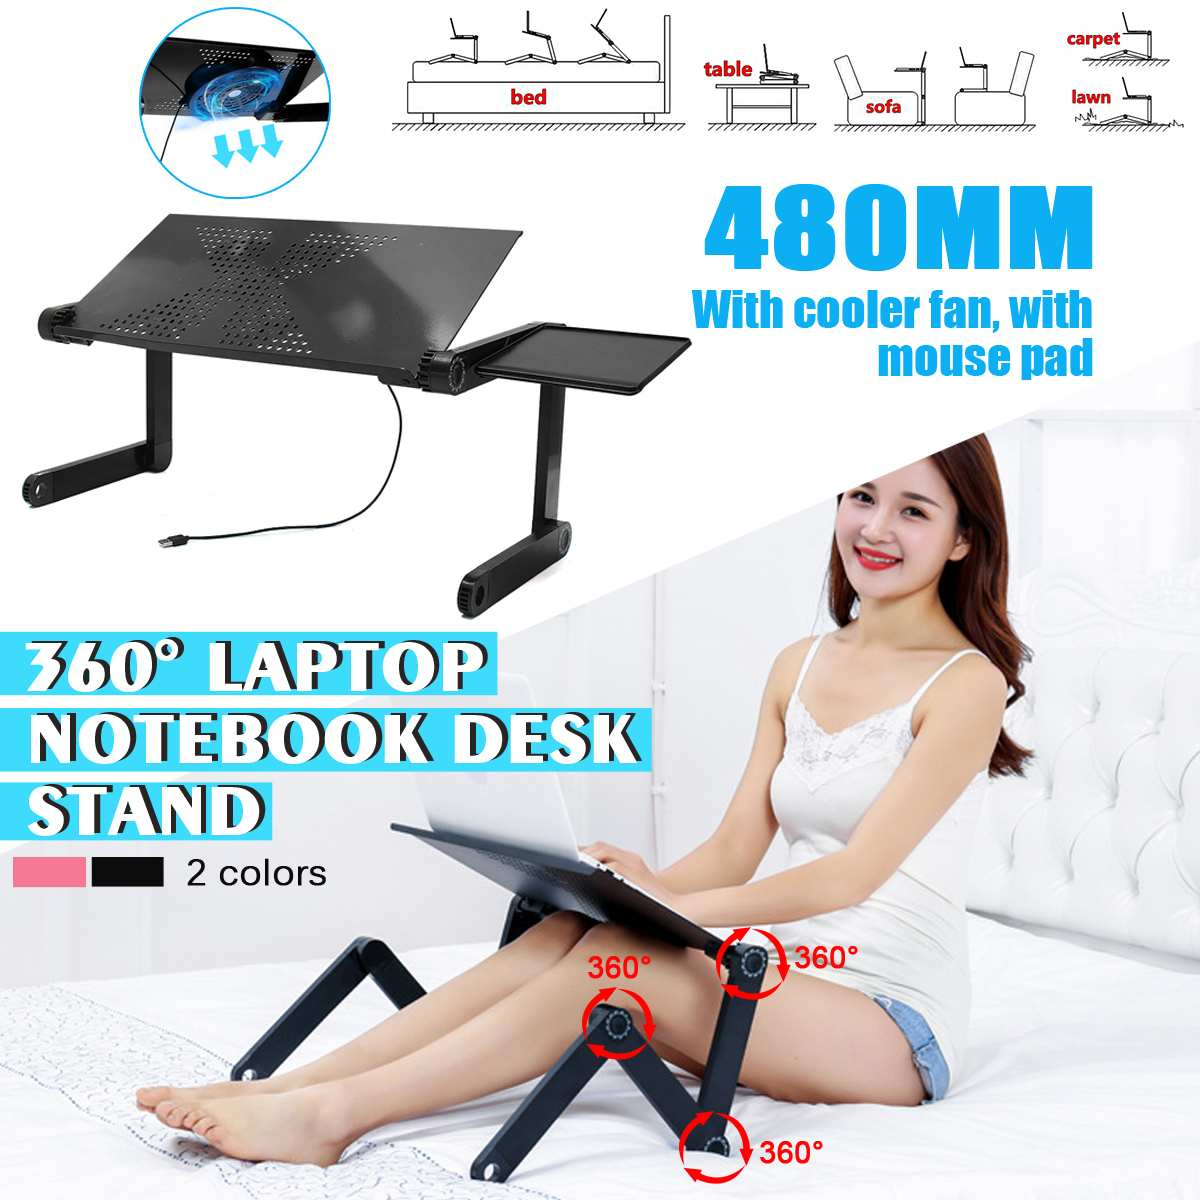 Laptop Desk Multi-function Lapdesk Table Stand Bed Tray Portable Laptop Stand Aluminium Holder With Mouse Pad USB Cooler